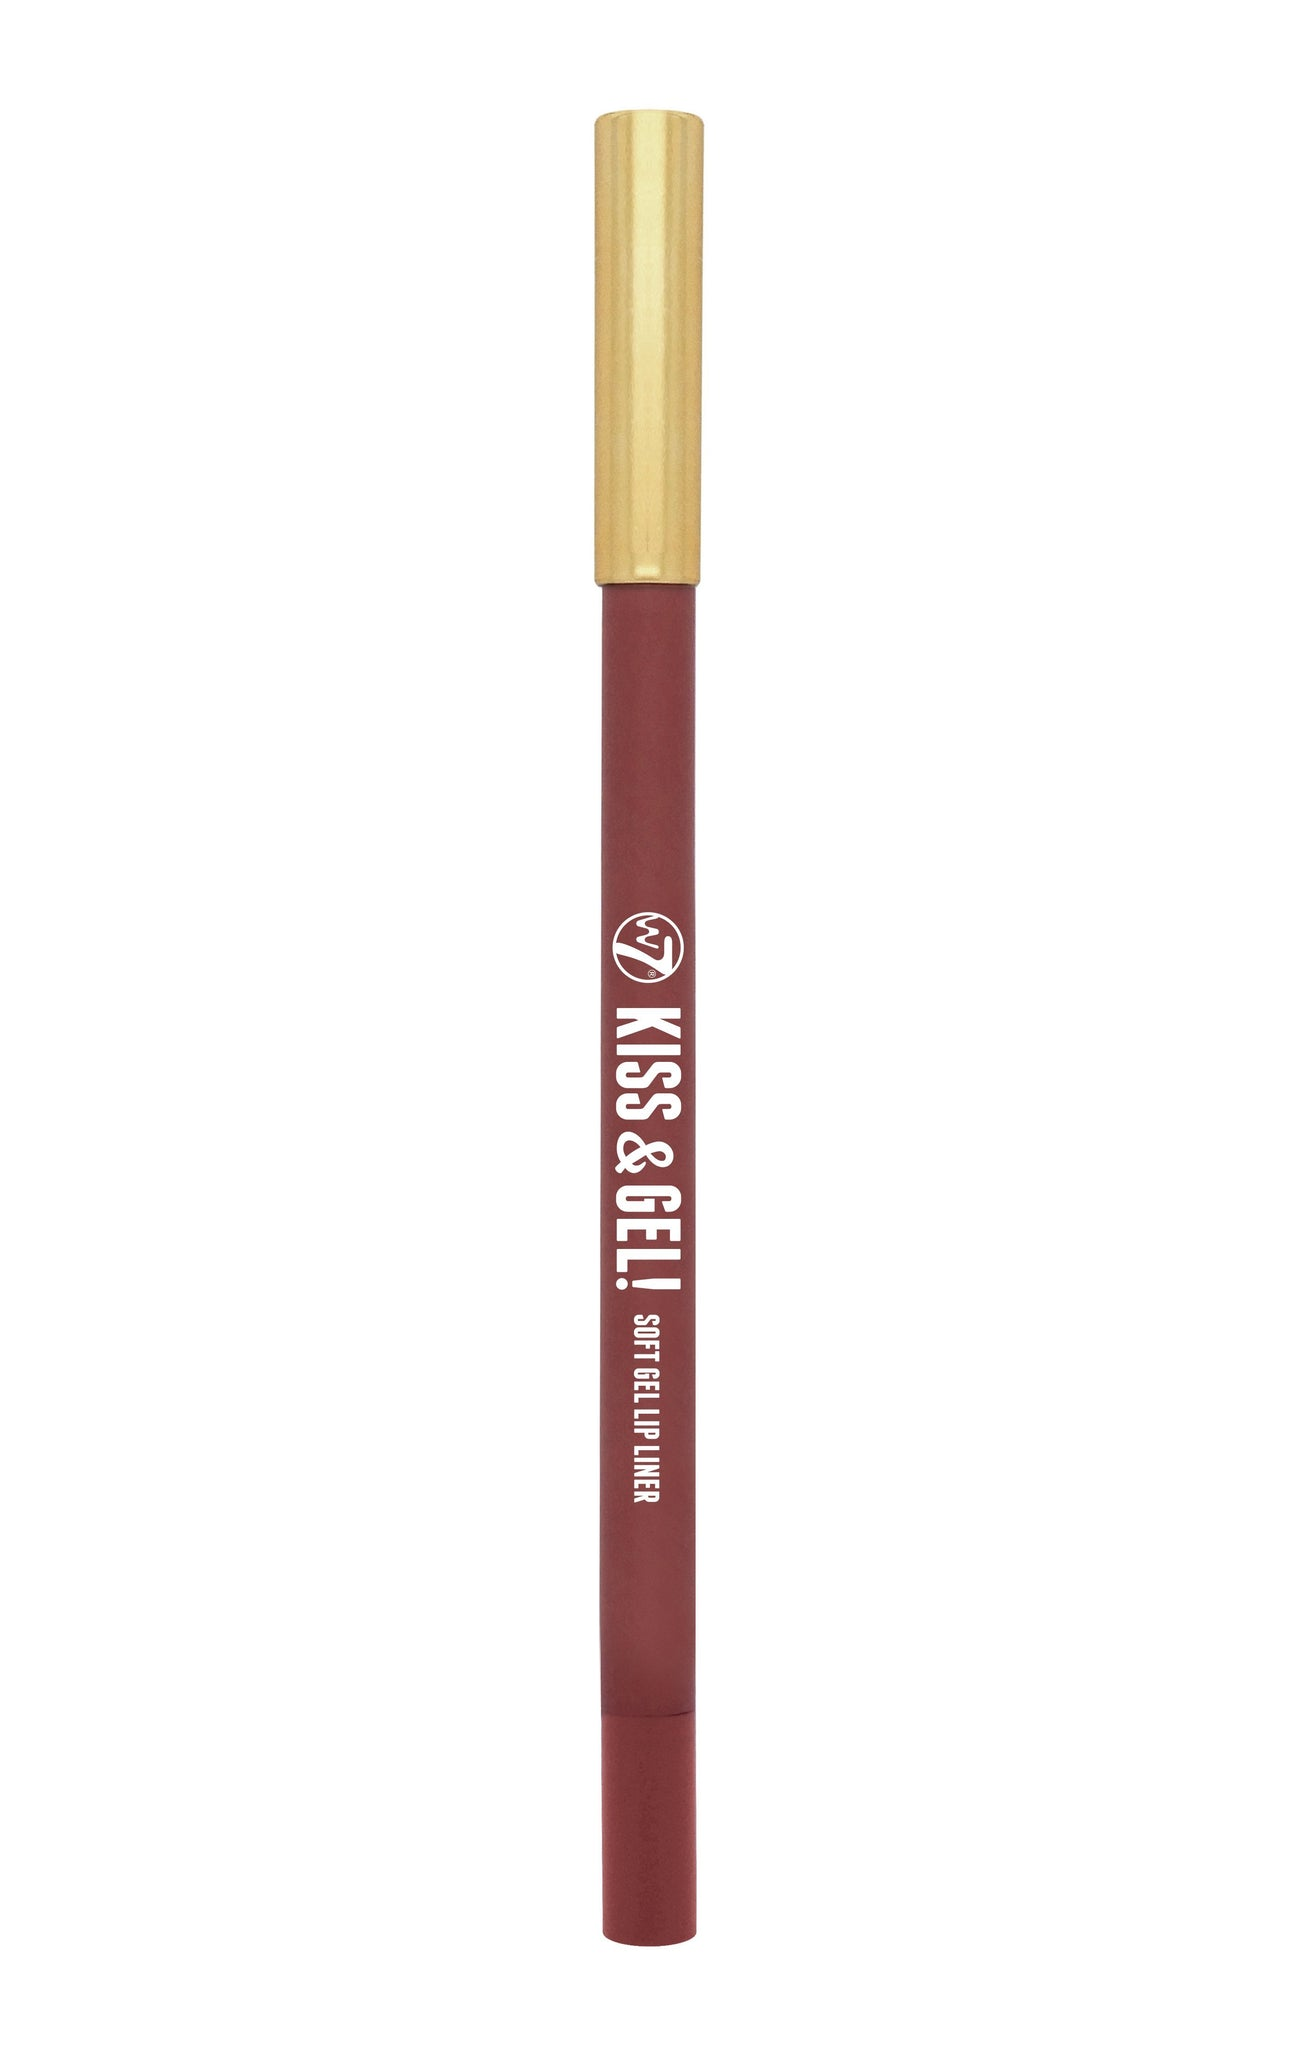 W7 Kiss & Gel! Soft Gel Lip Liner Rose - districtglitz.com